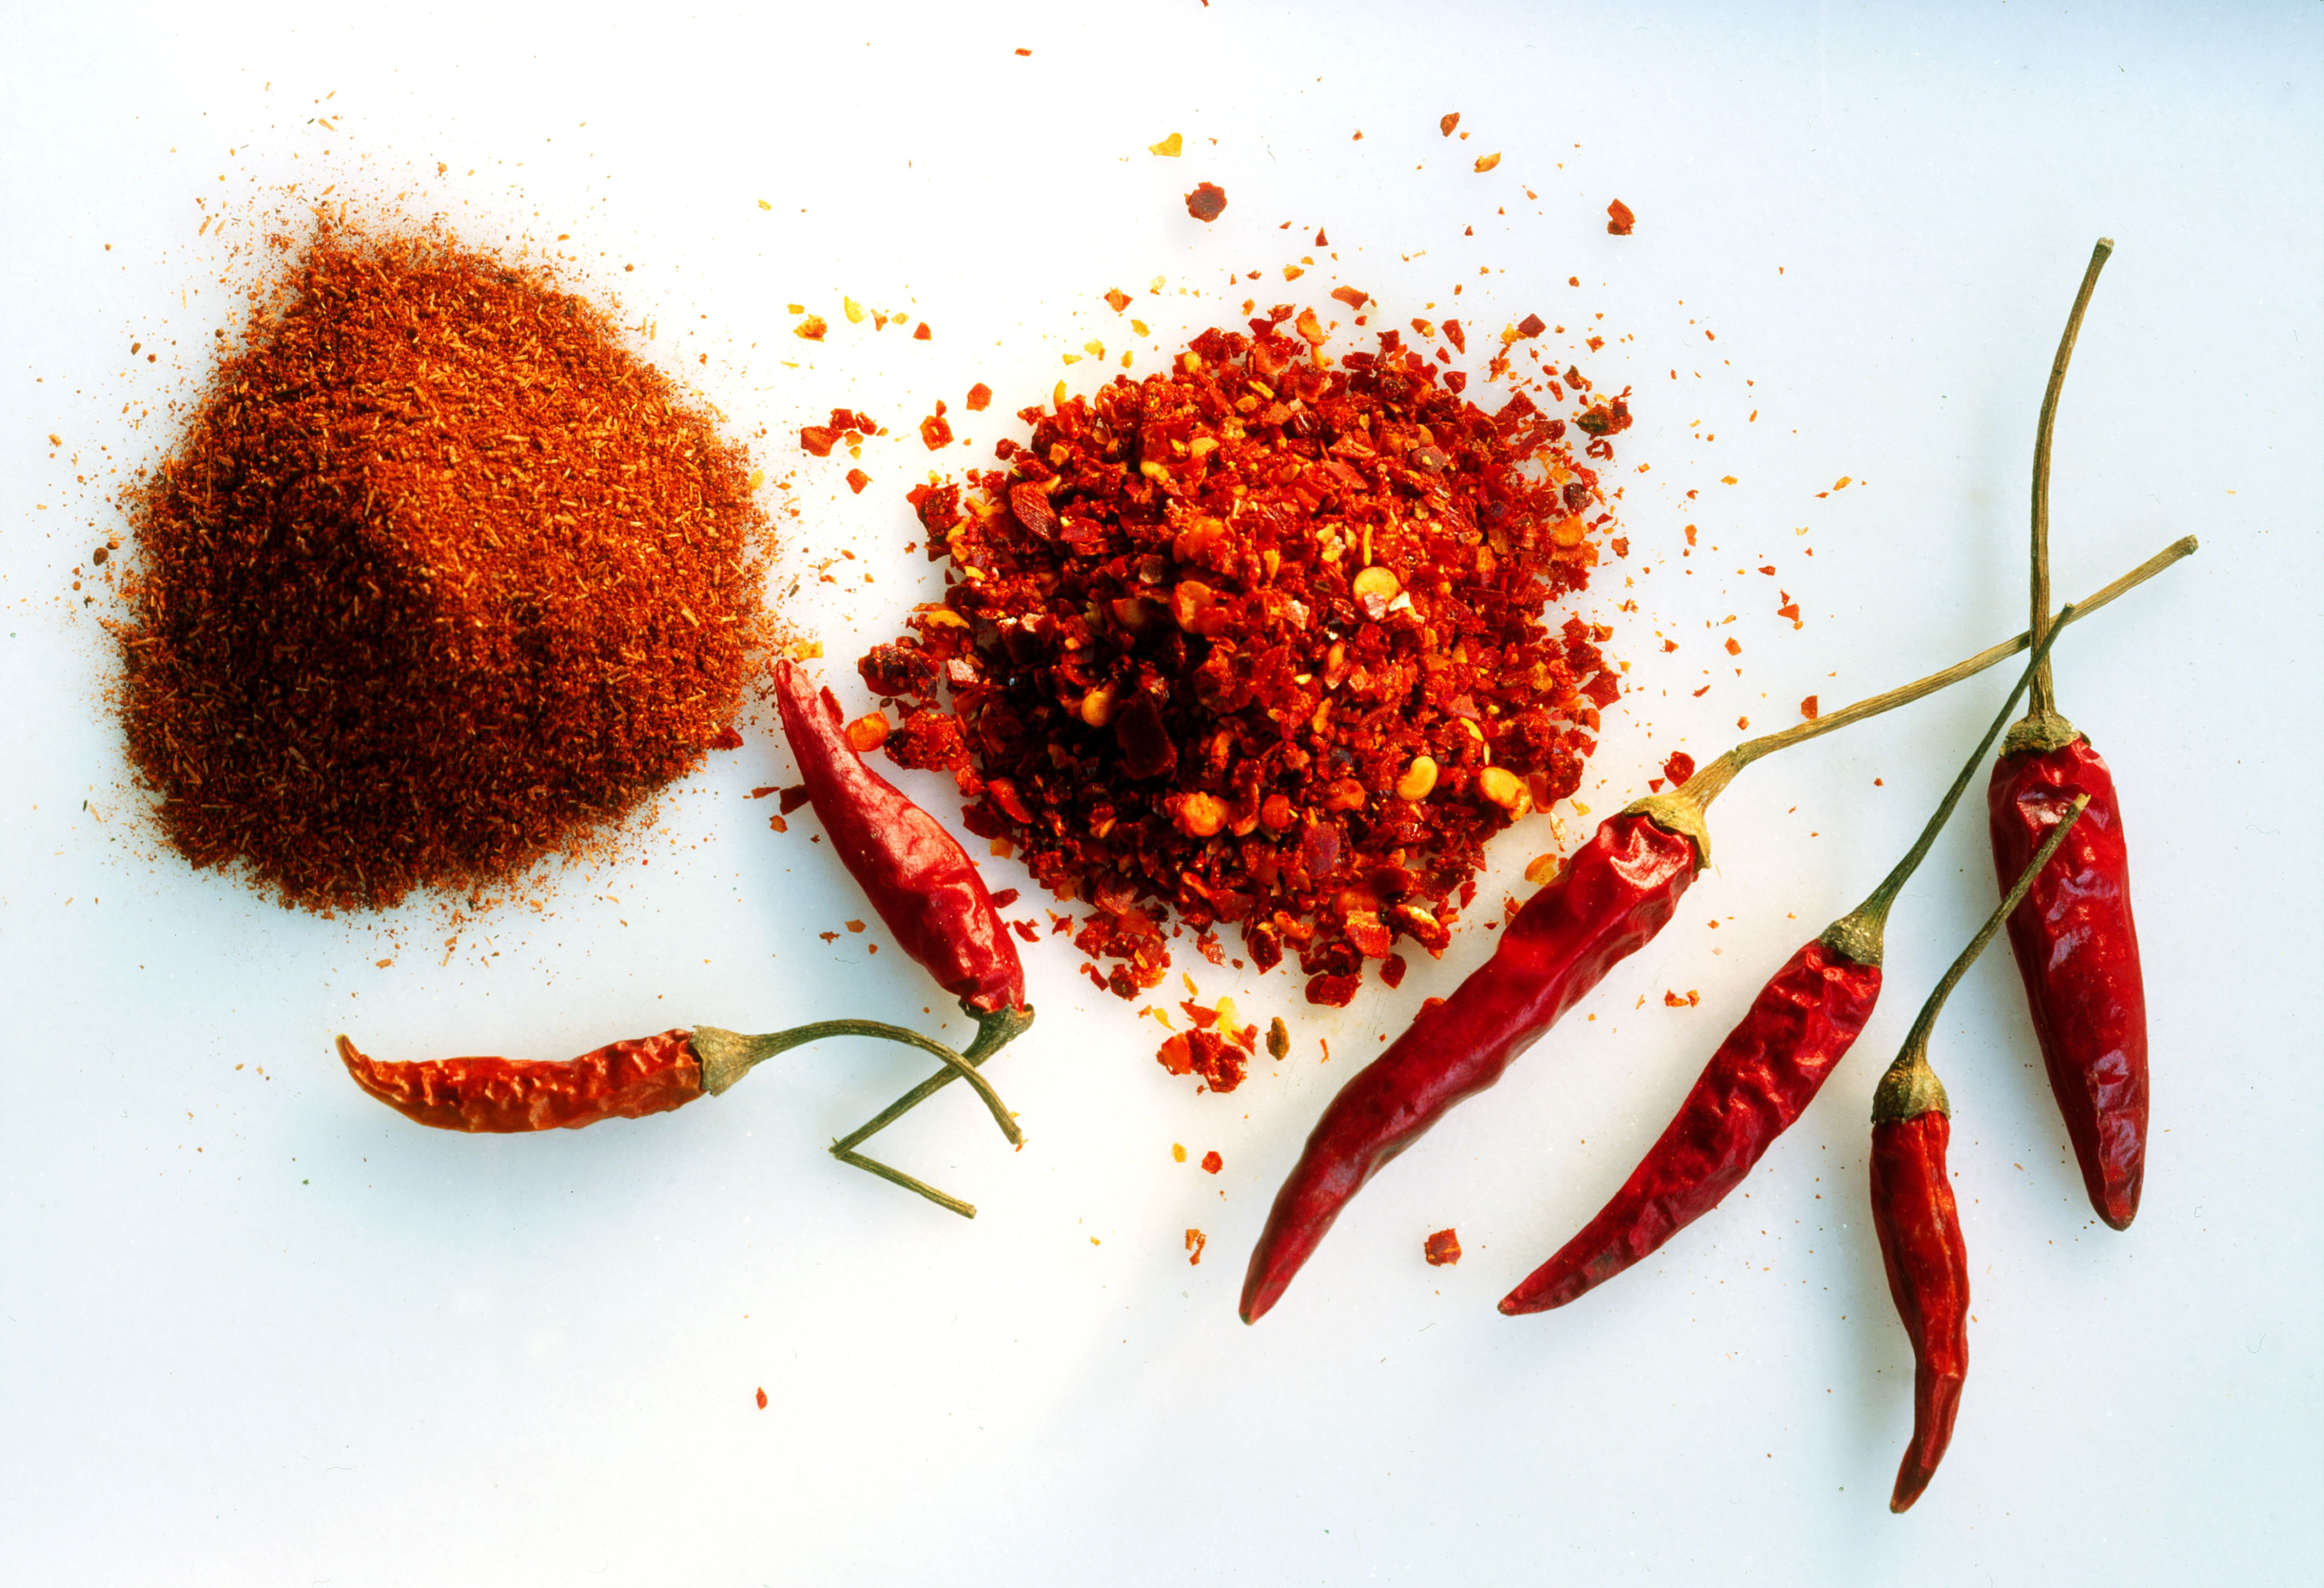 Dried, crushed & ground chillies